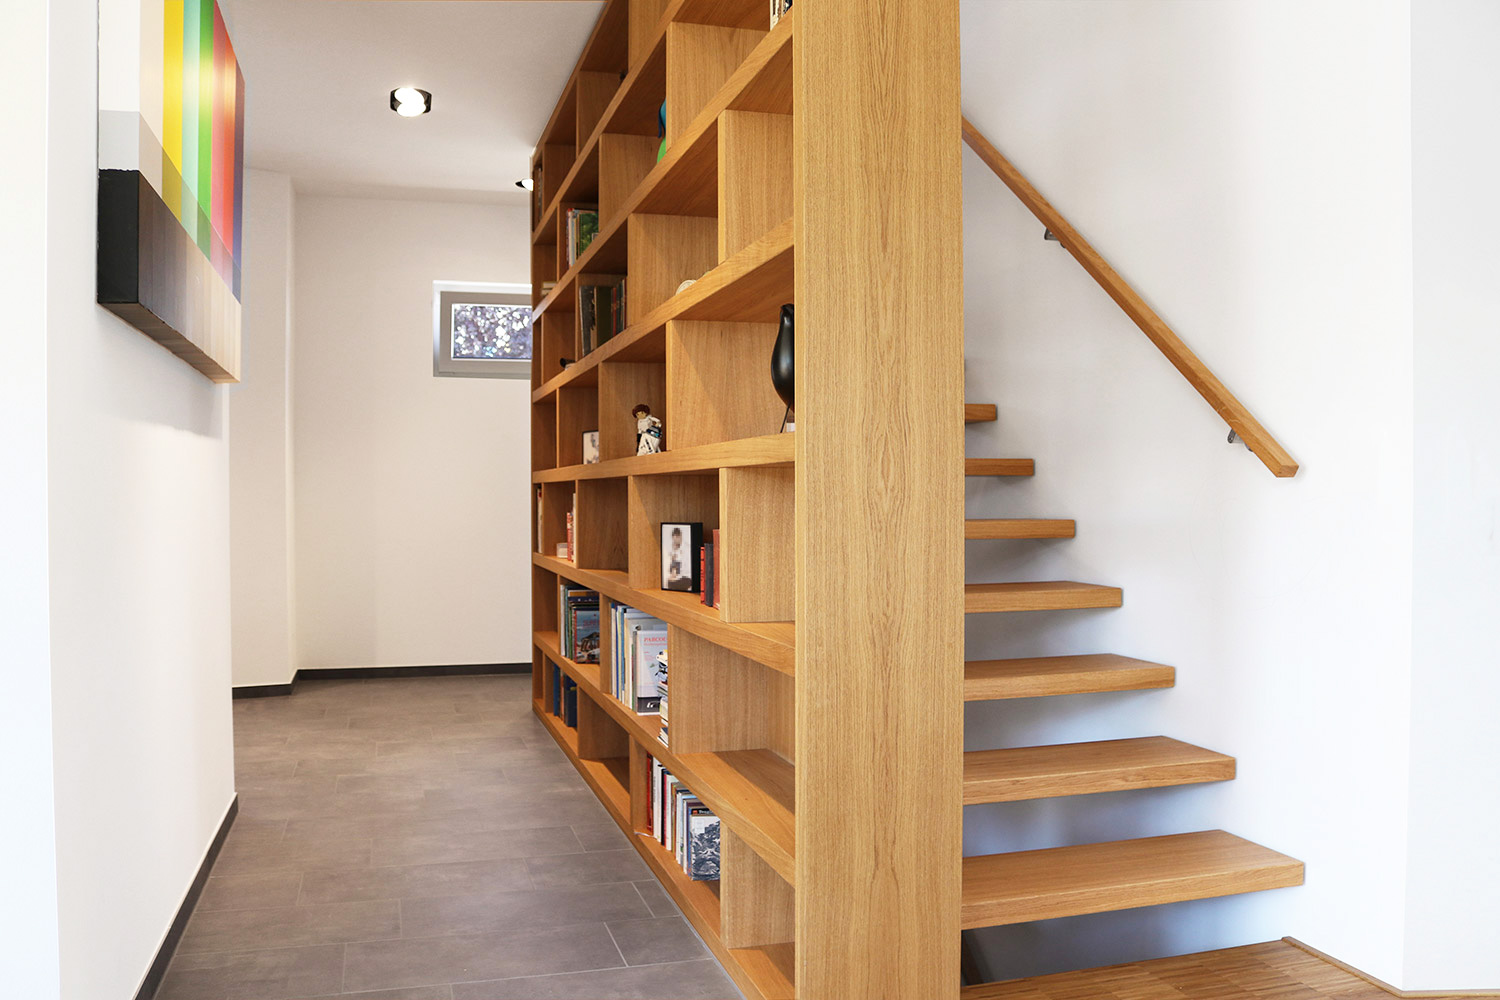 moderne treppe bucherregal, multifunktionale bolzentreppe mit bücherregal in hofheim, Design ideen